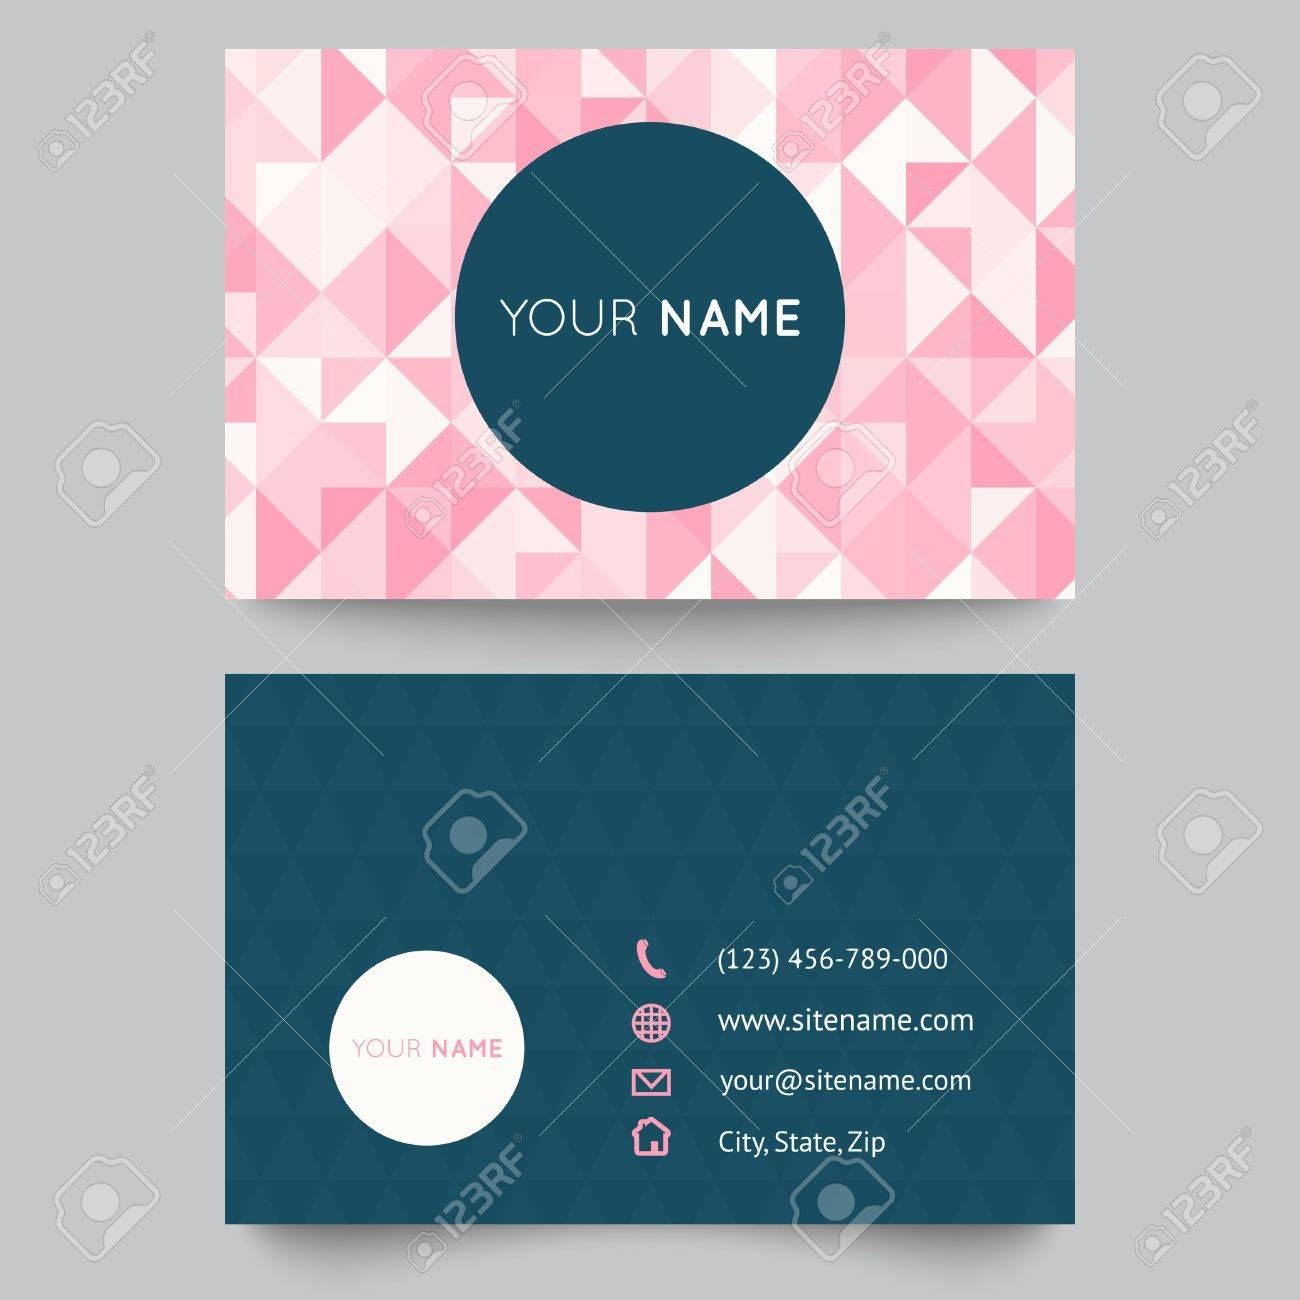 Business Card Template Abstract Crystal Pink Triangle Background